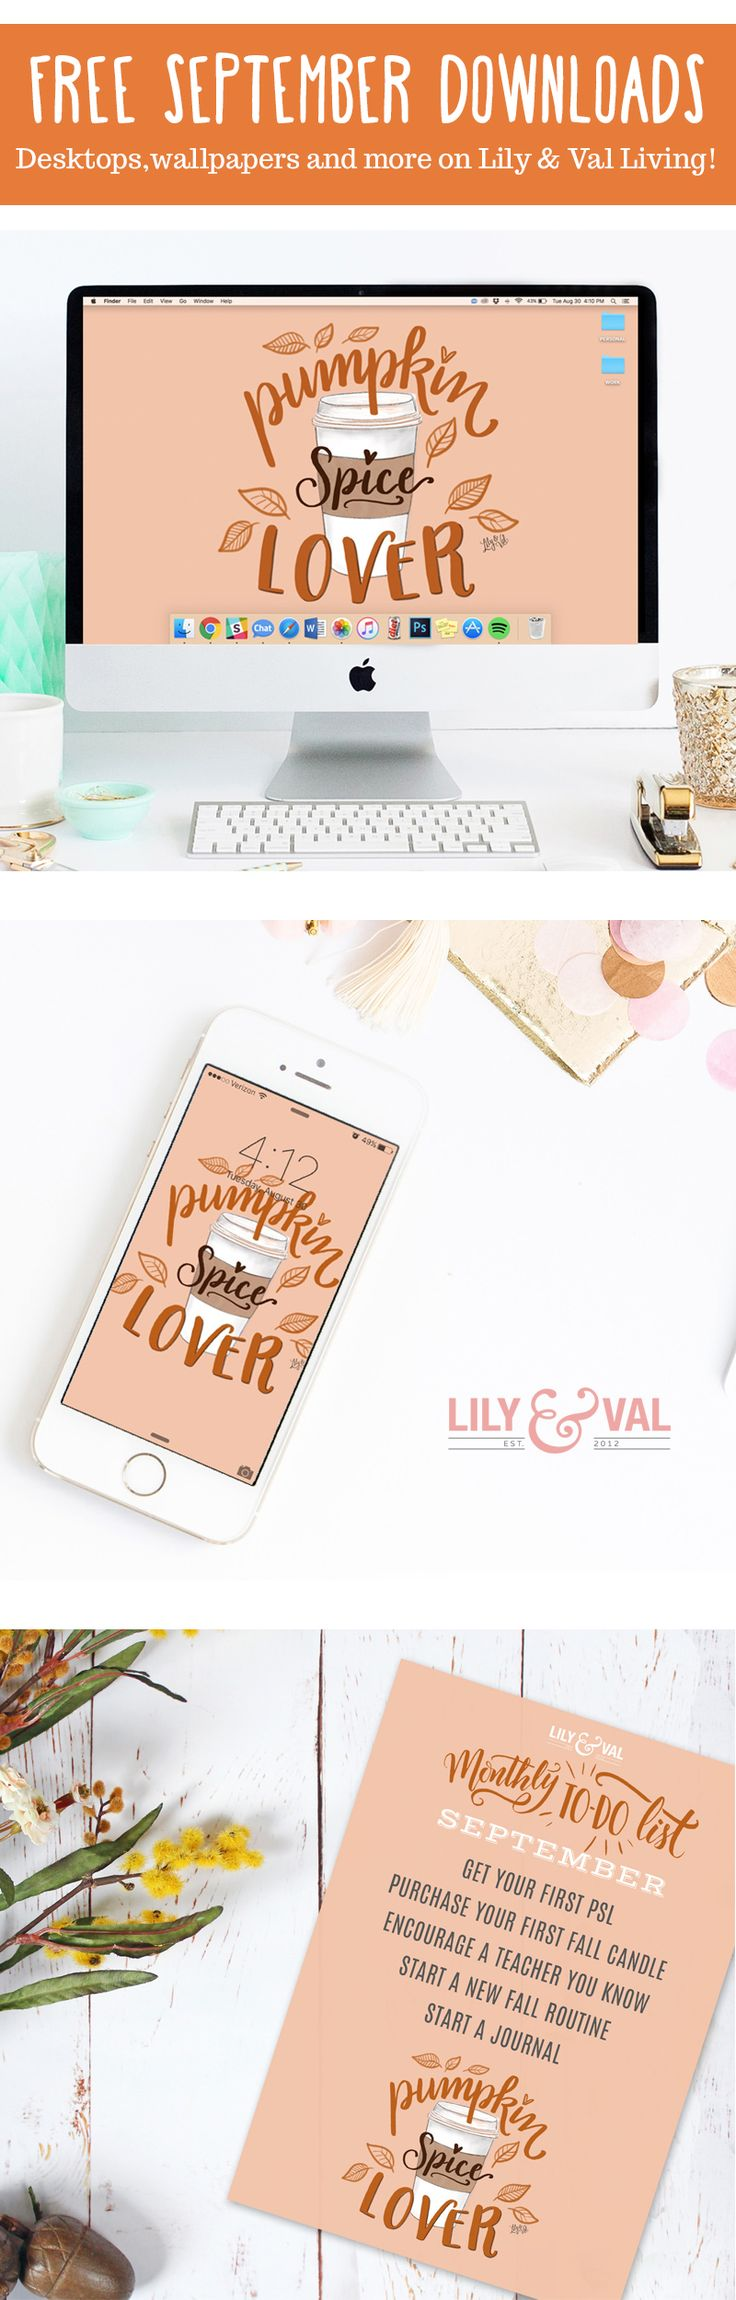 Free Downloads On Lily & Val Living! Fall Desktops, Wallpapers And Todo